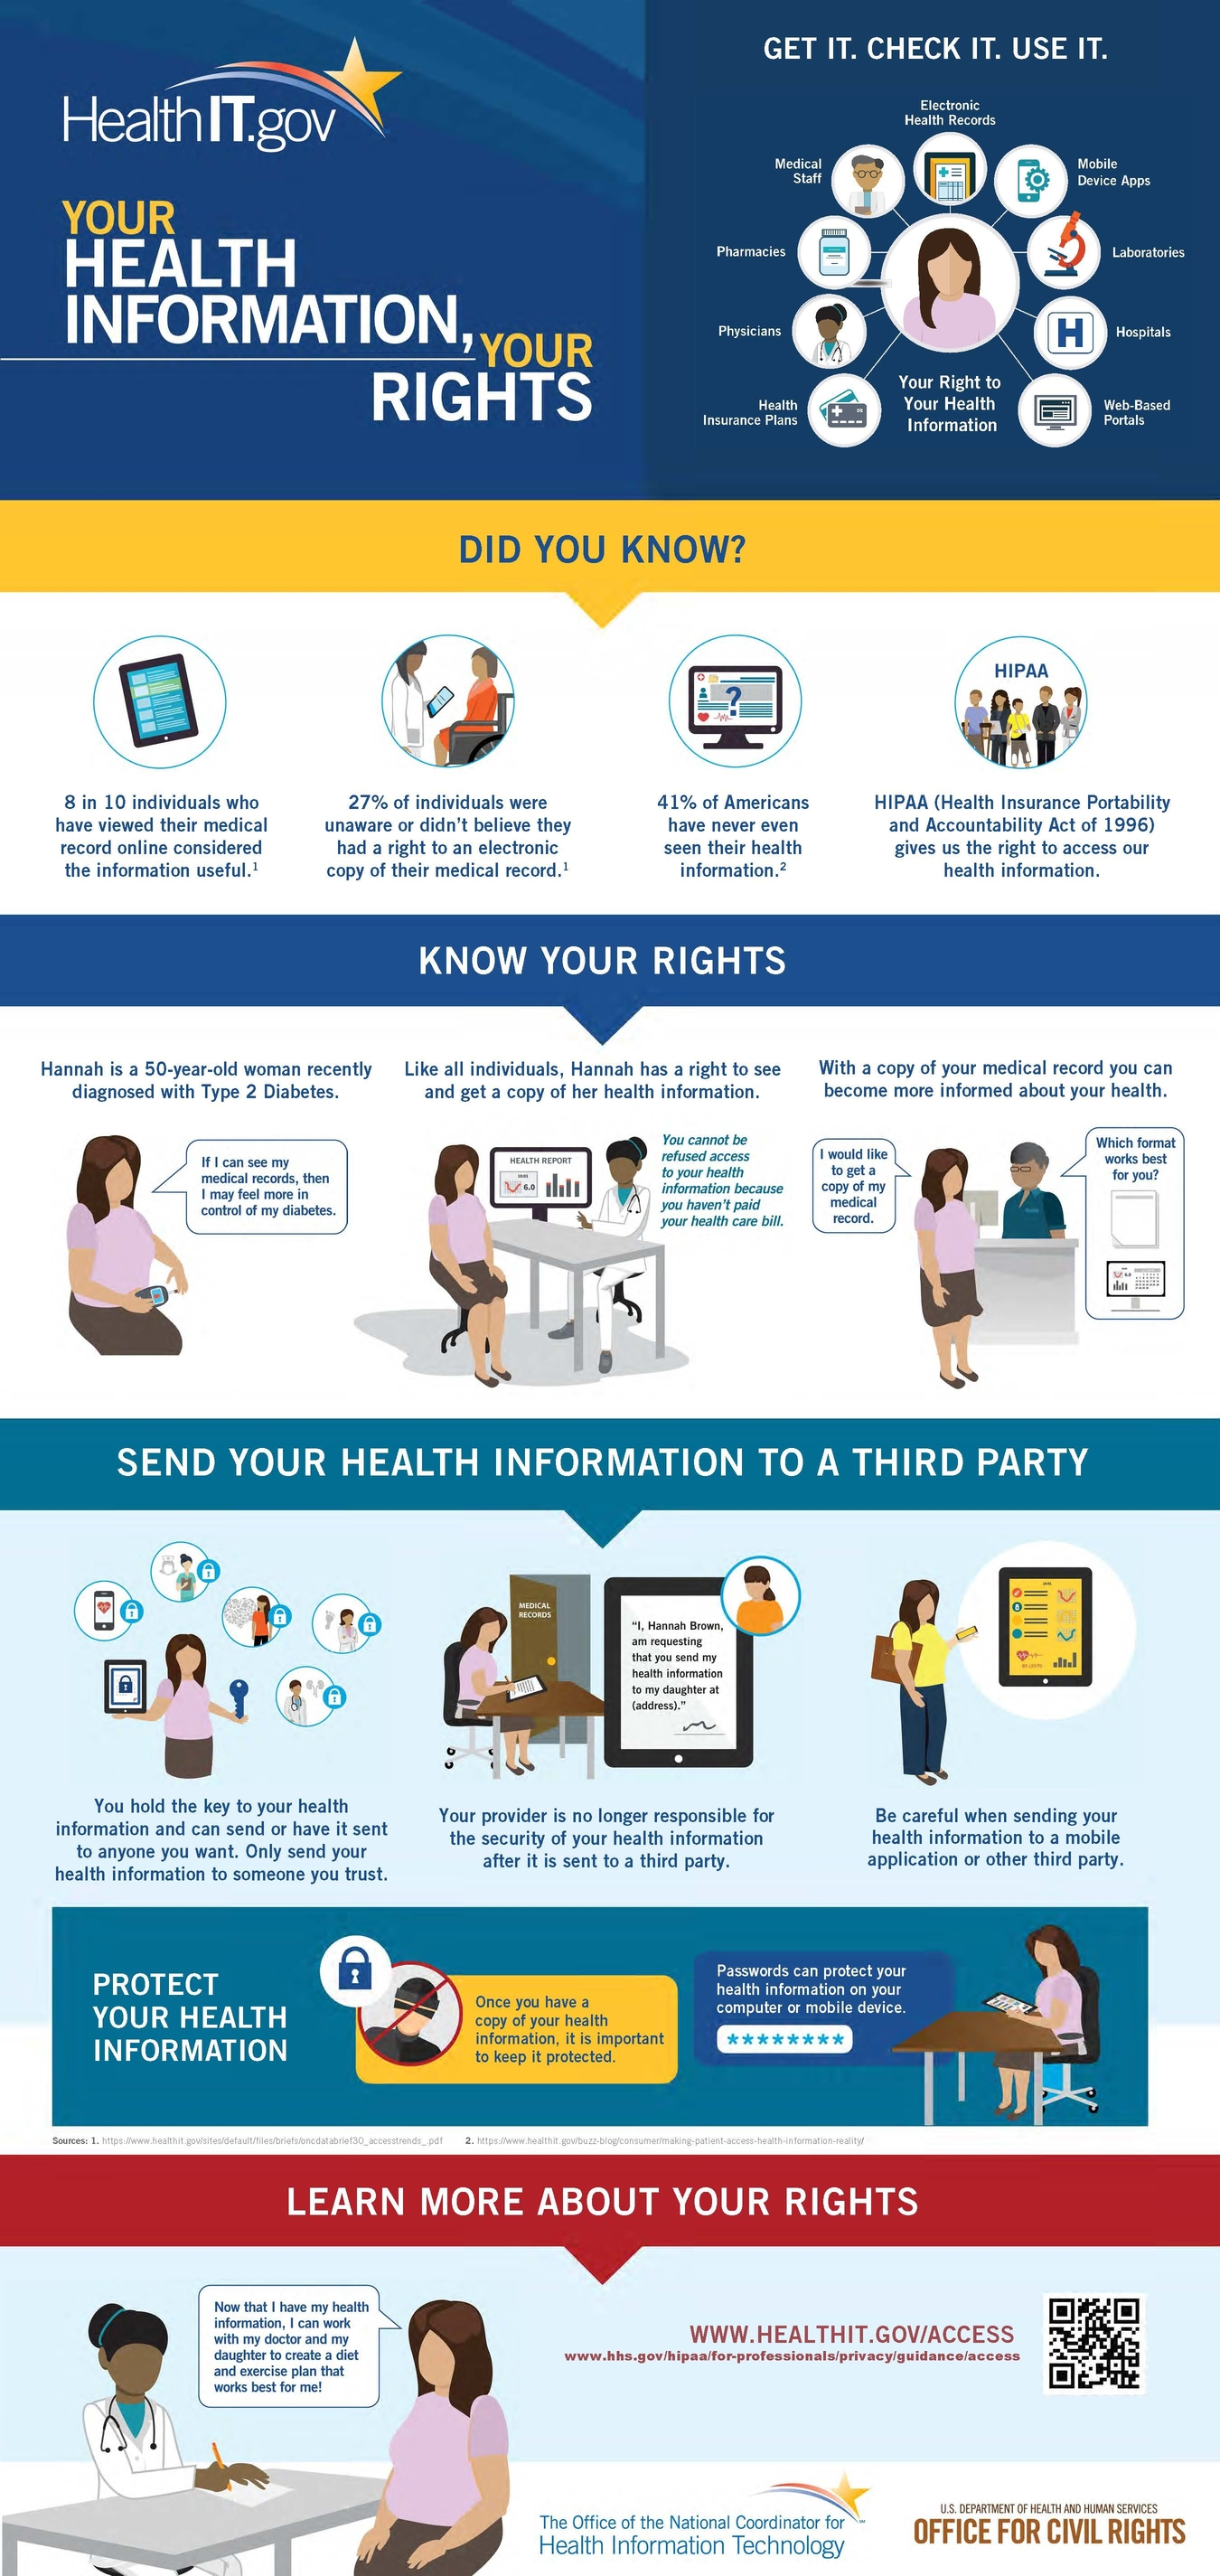 This infographic, titled Your Health Information, Your Rights, was created by the Office of the National Coordinator for Health Information Technology and the U. S. Department of Health and Human Services Office for Civil Rights.  The infographic includes facts pertaining to an individual's right to accessing their medical records, a demonstration of how to obtain medical records and tips for protecting health information.